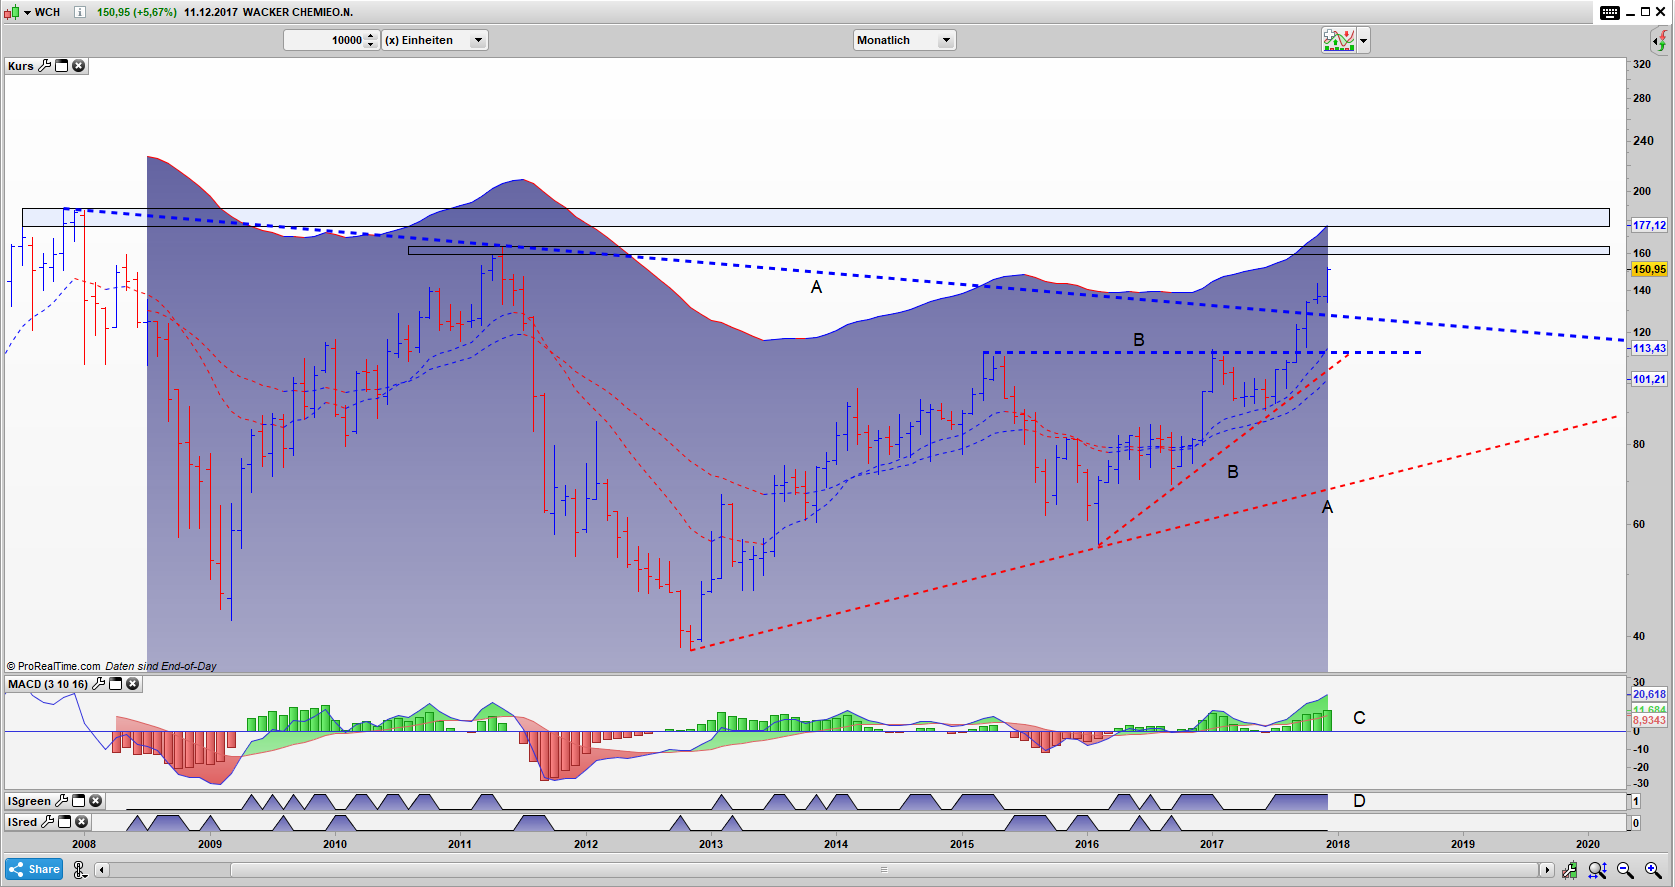 WCH Bar Monats Chart: Chance auf ein New Momentum High Pattern